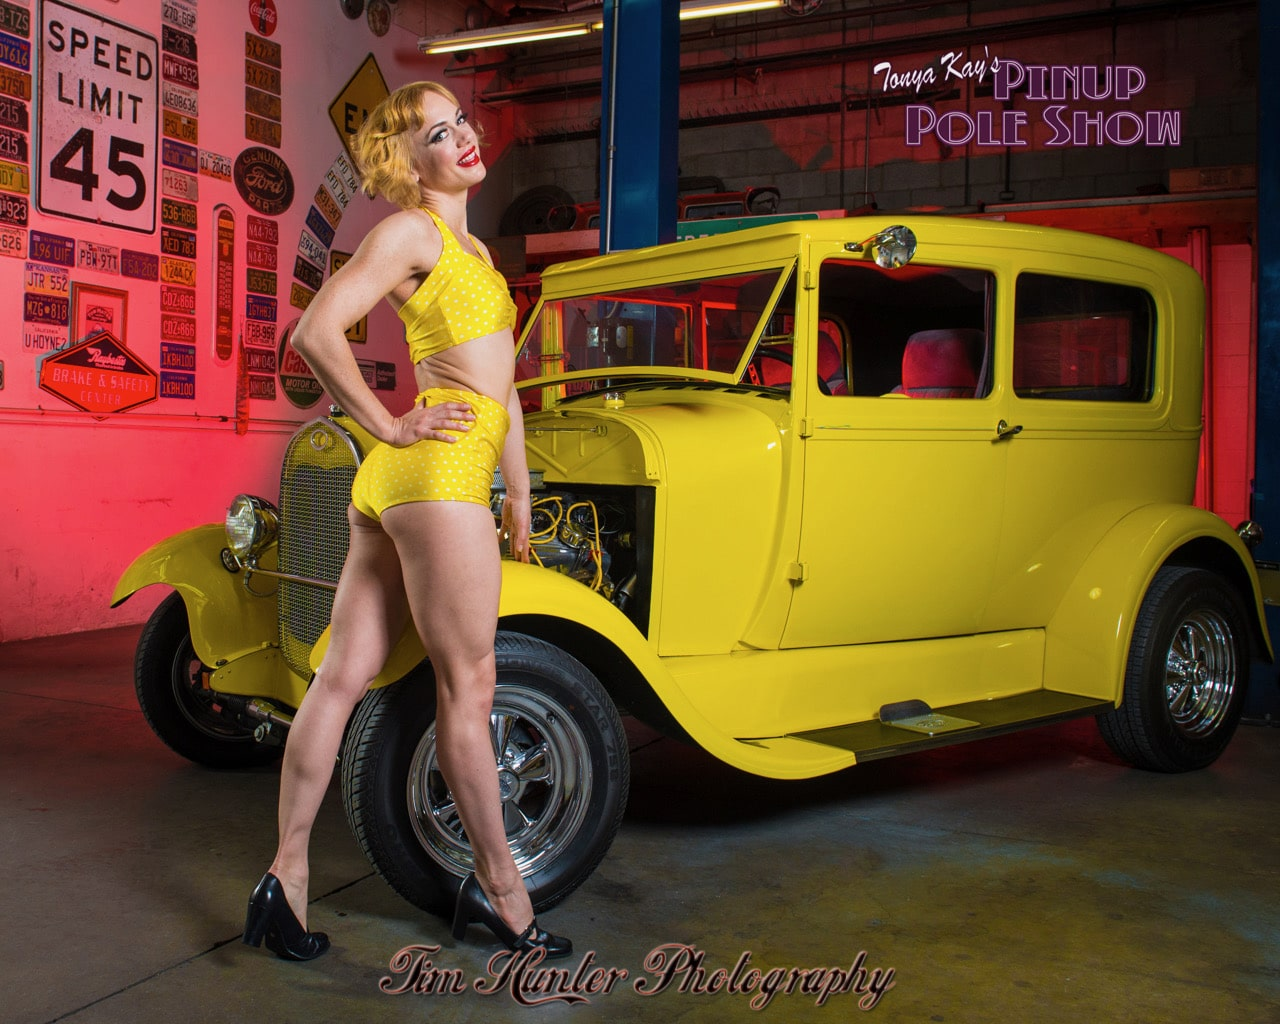 Pinup Pole Show Pinup of the Week: Tonya Kay with Tweety